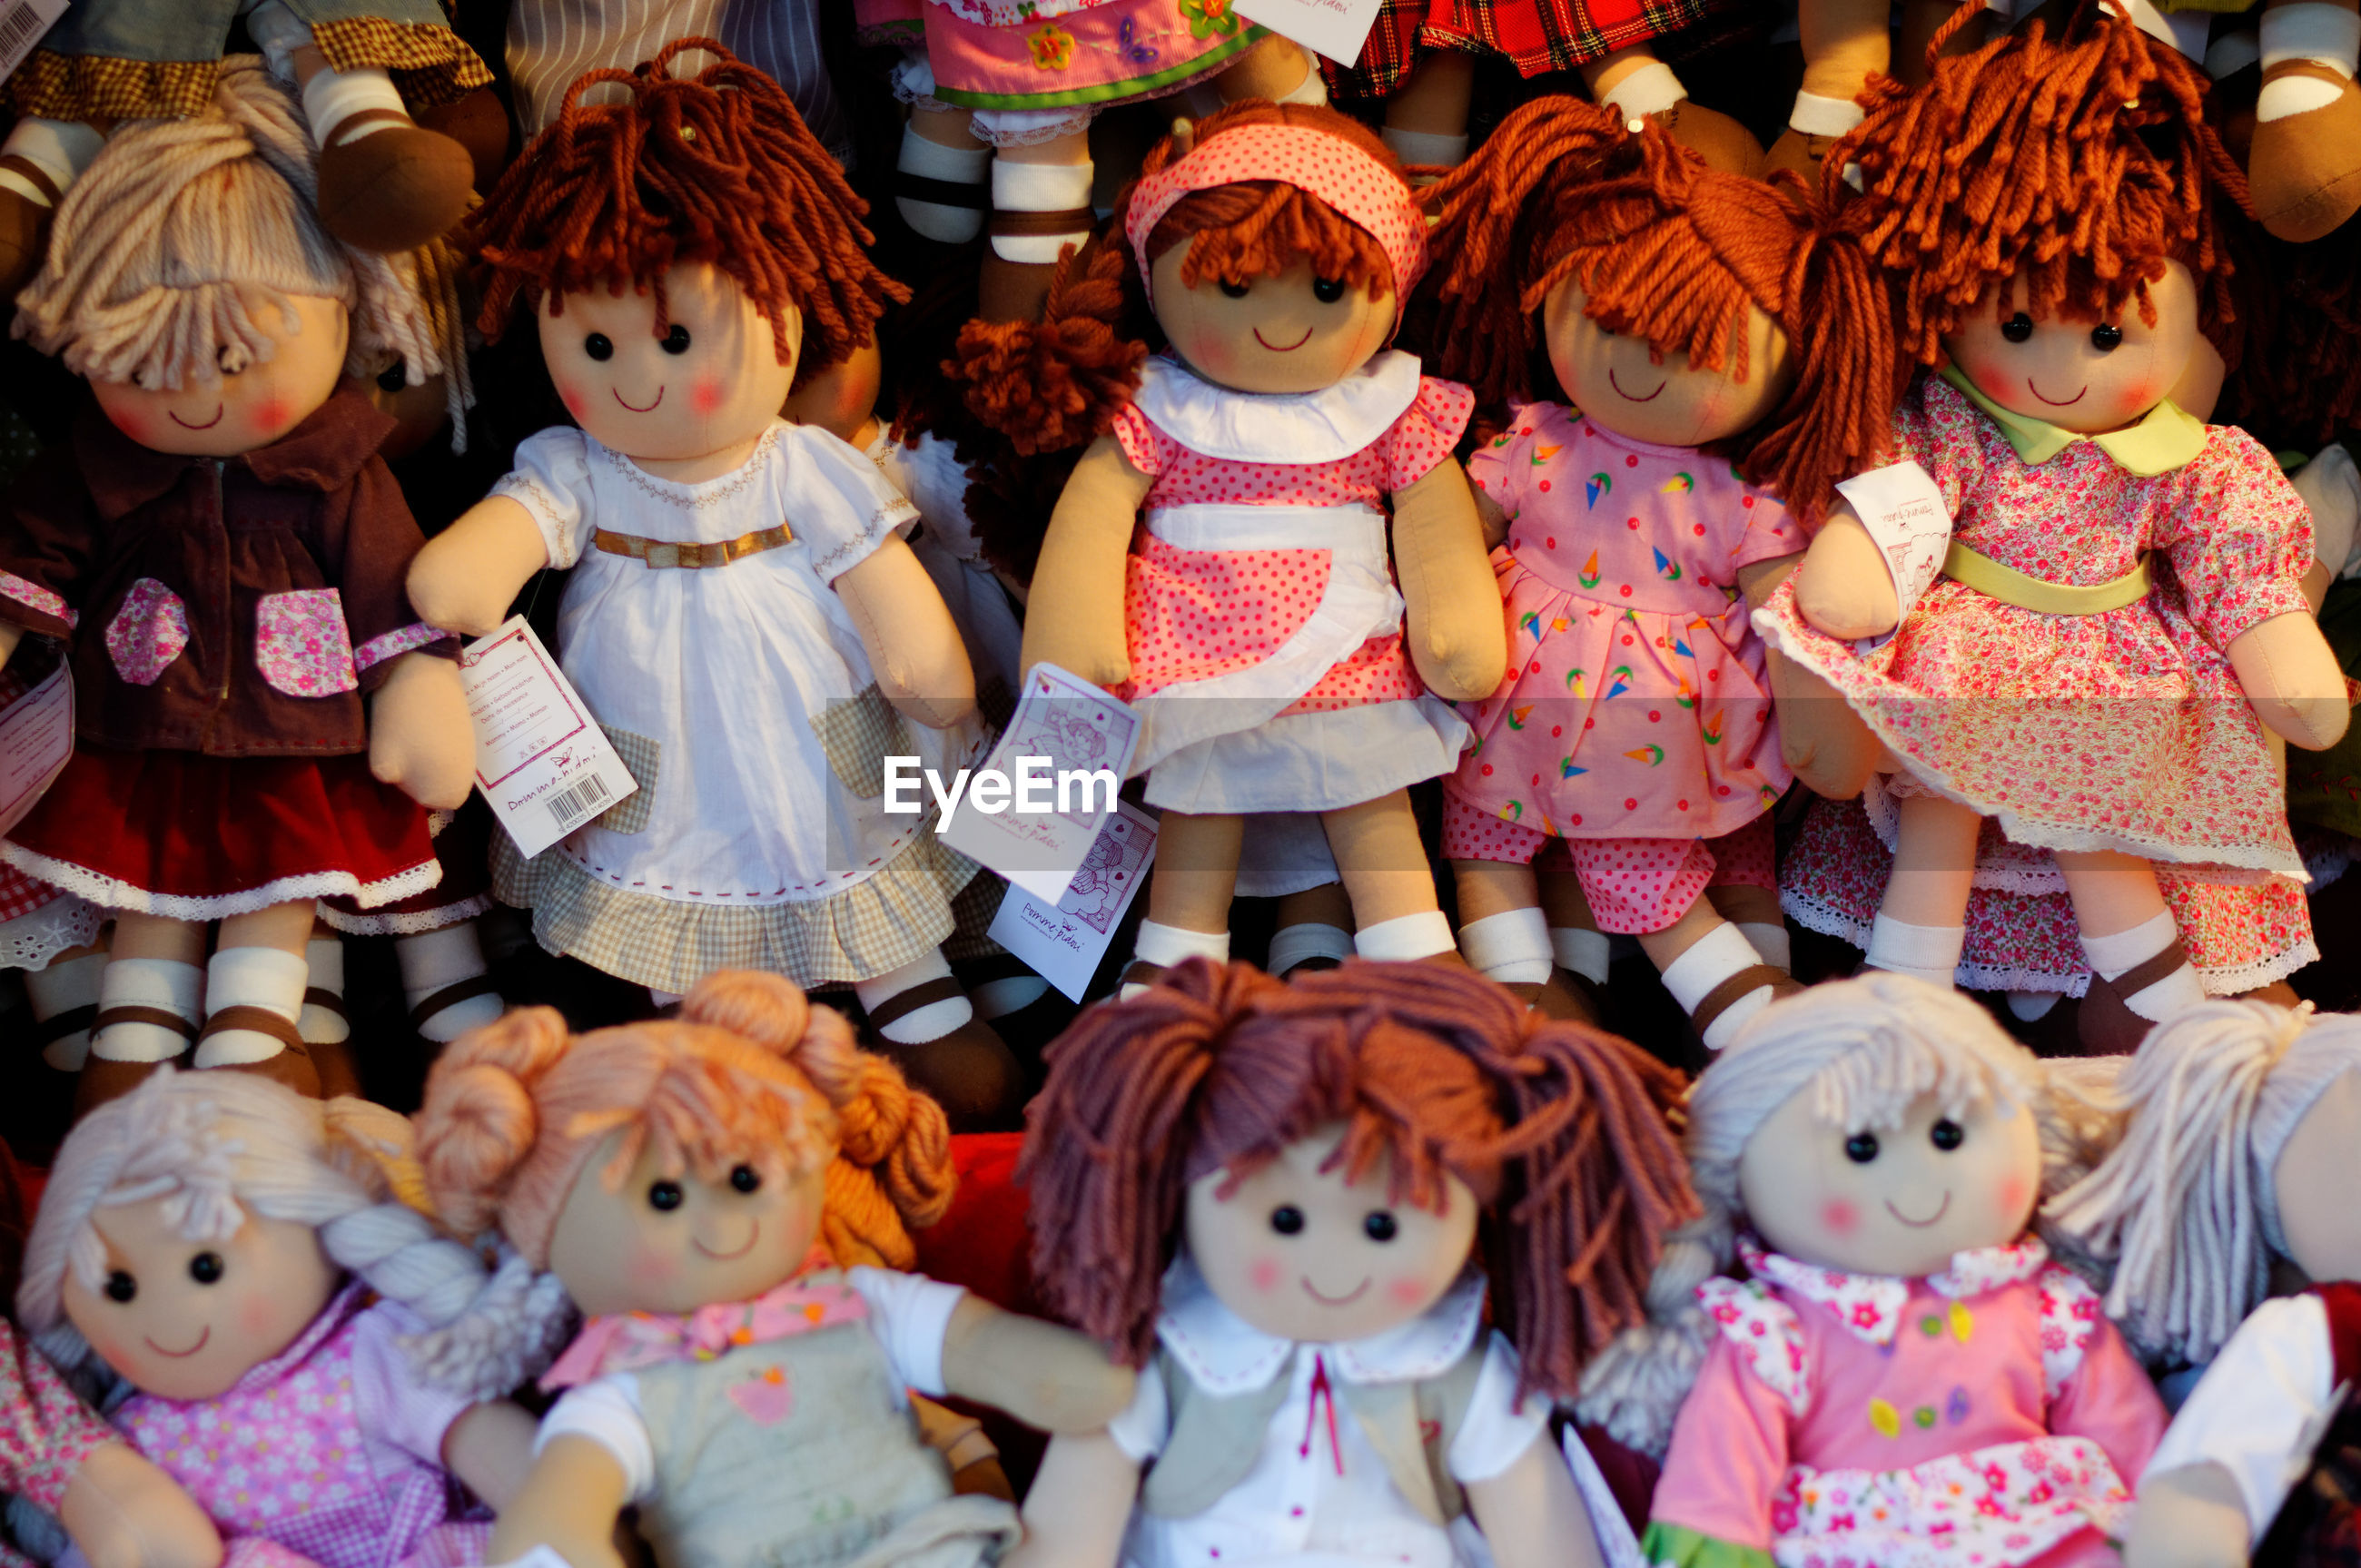 VARIOUS TOYS FOR SALE IN MARKET STALL